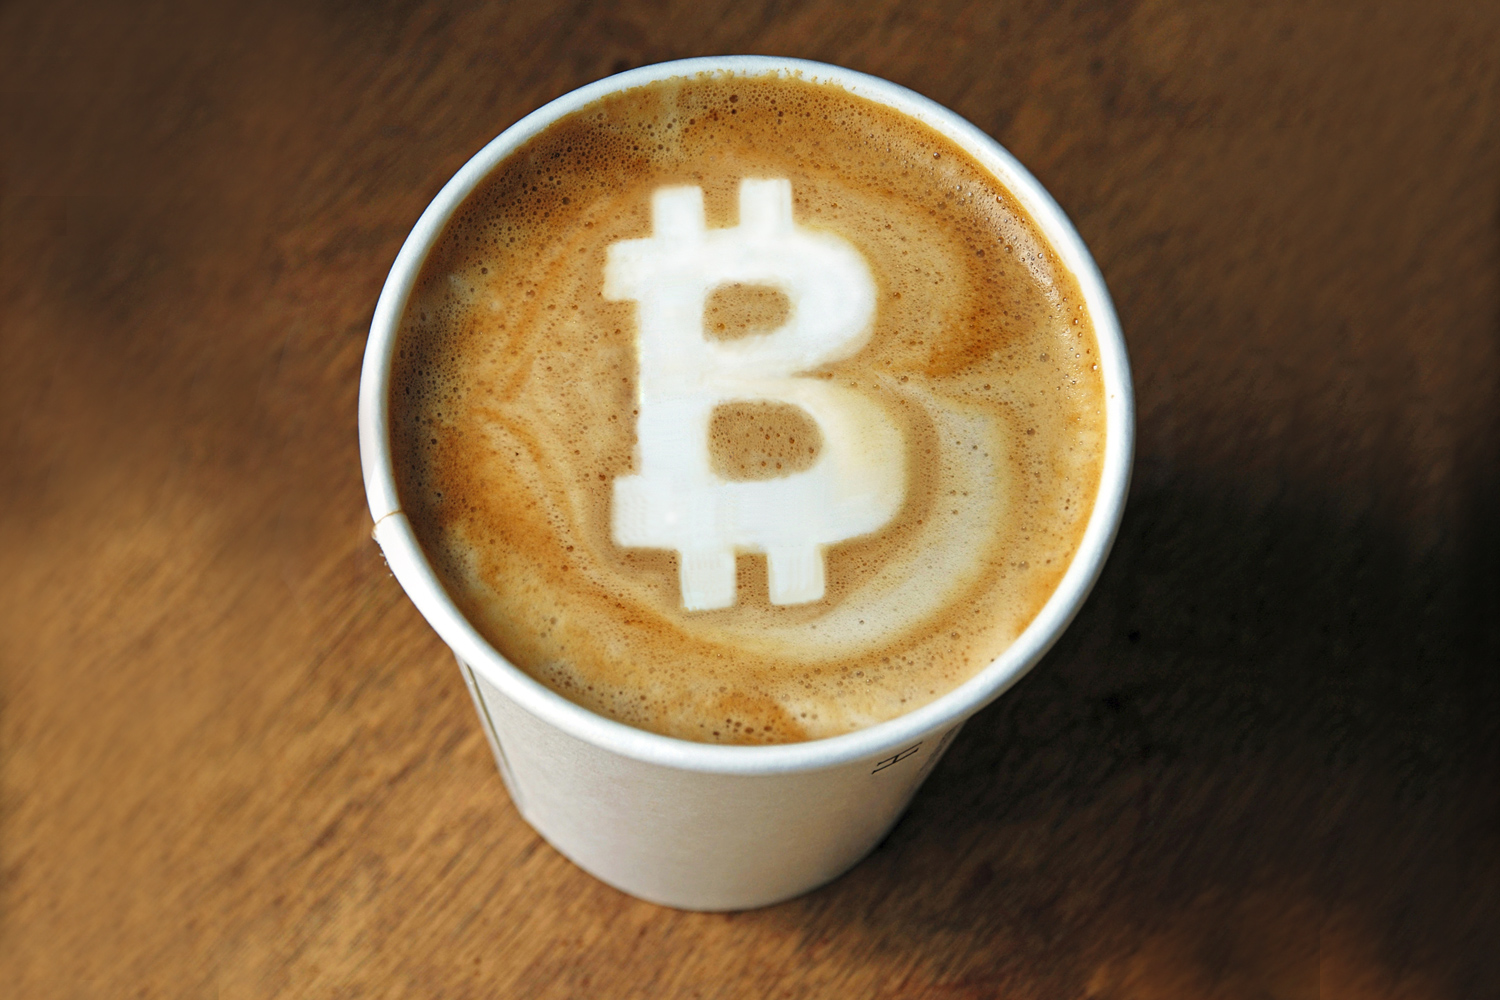 bitcoin cafe prague paralelni polis